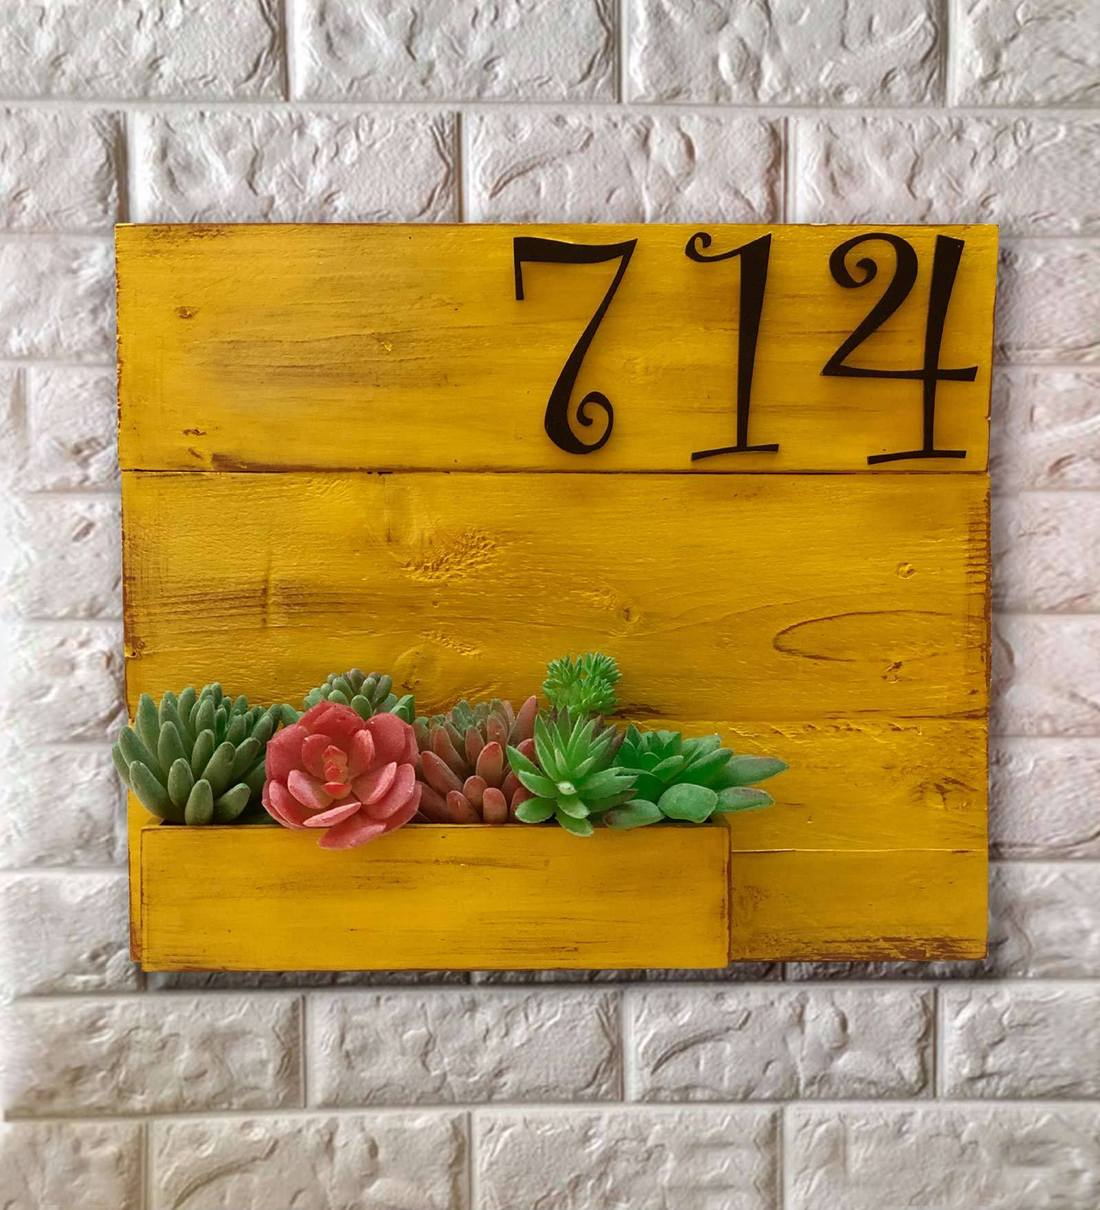 Buy Yellow Wood Name Plate Number Plate Rustic Yellow With Planter By Lakkad Studios Online Name Plates Name Plates Home Decor Pepperfry Product